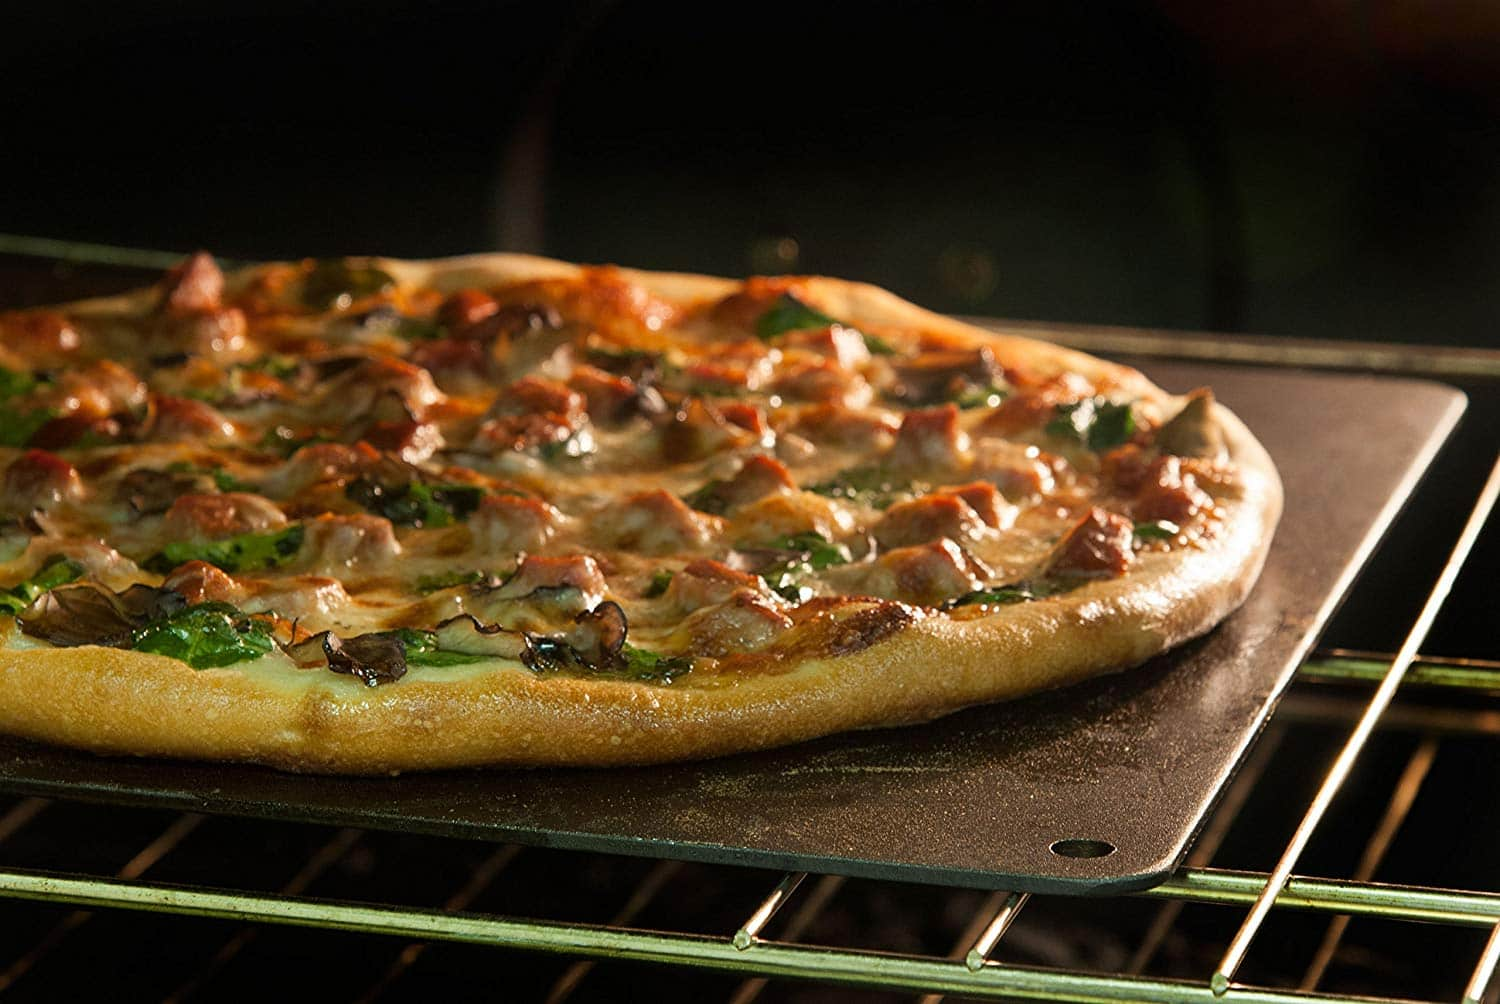 """Pizzacraft Square Steel Baking Plate for Oven Or BBQ Grill - 14"""" x 14"""" - $18.13 at Amazon"""